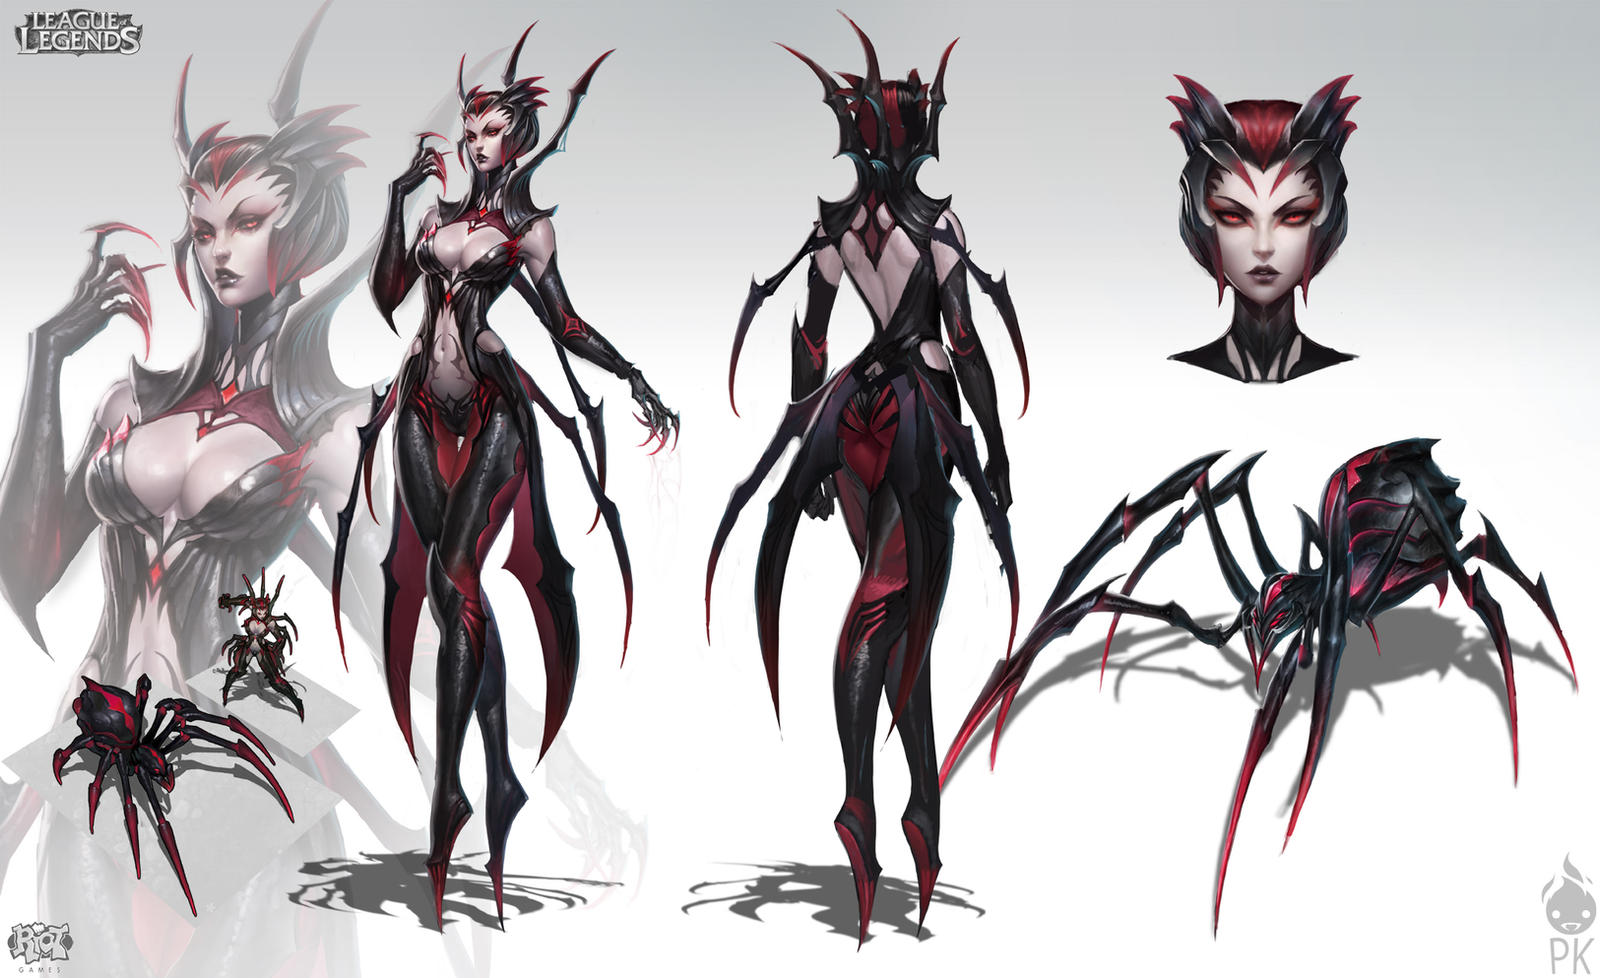 League Of Legends Character Design Contest : Elise the spider queen by zeronis on deviantart